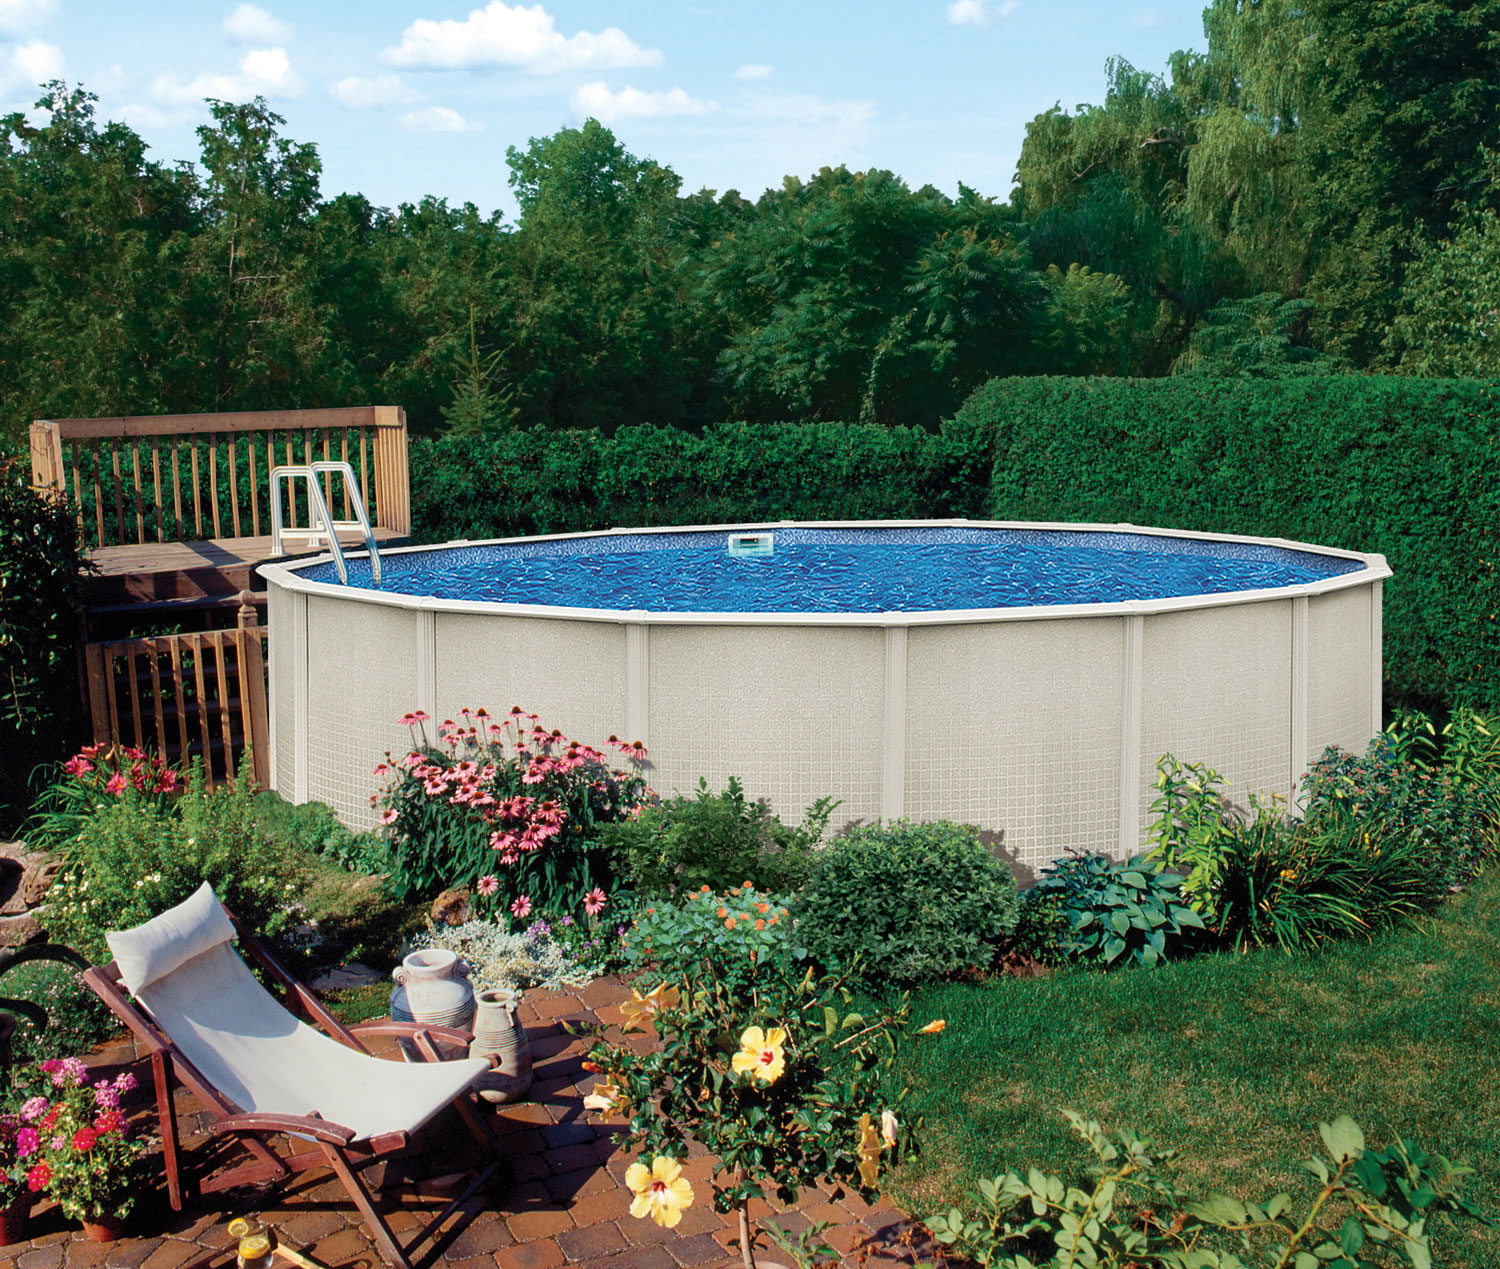 How To Pick An Aboveground Pool The Washington Post